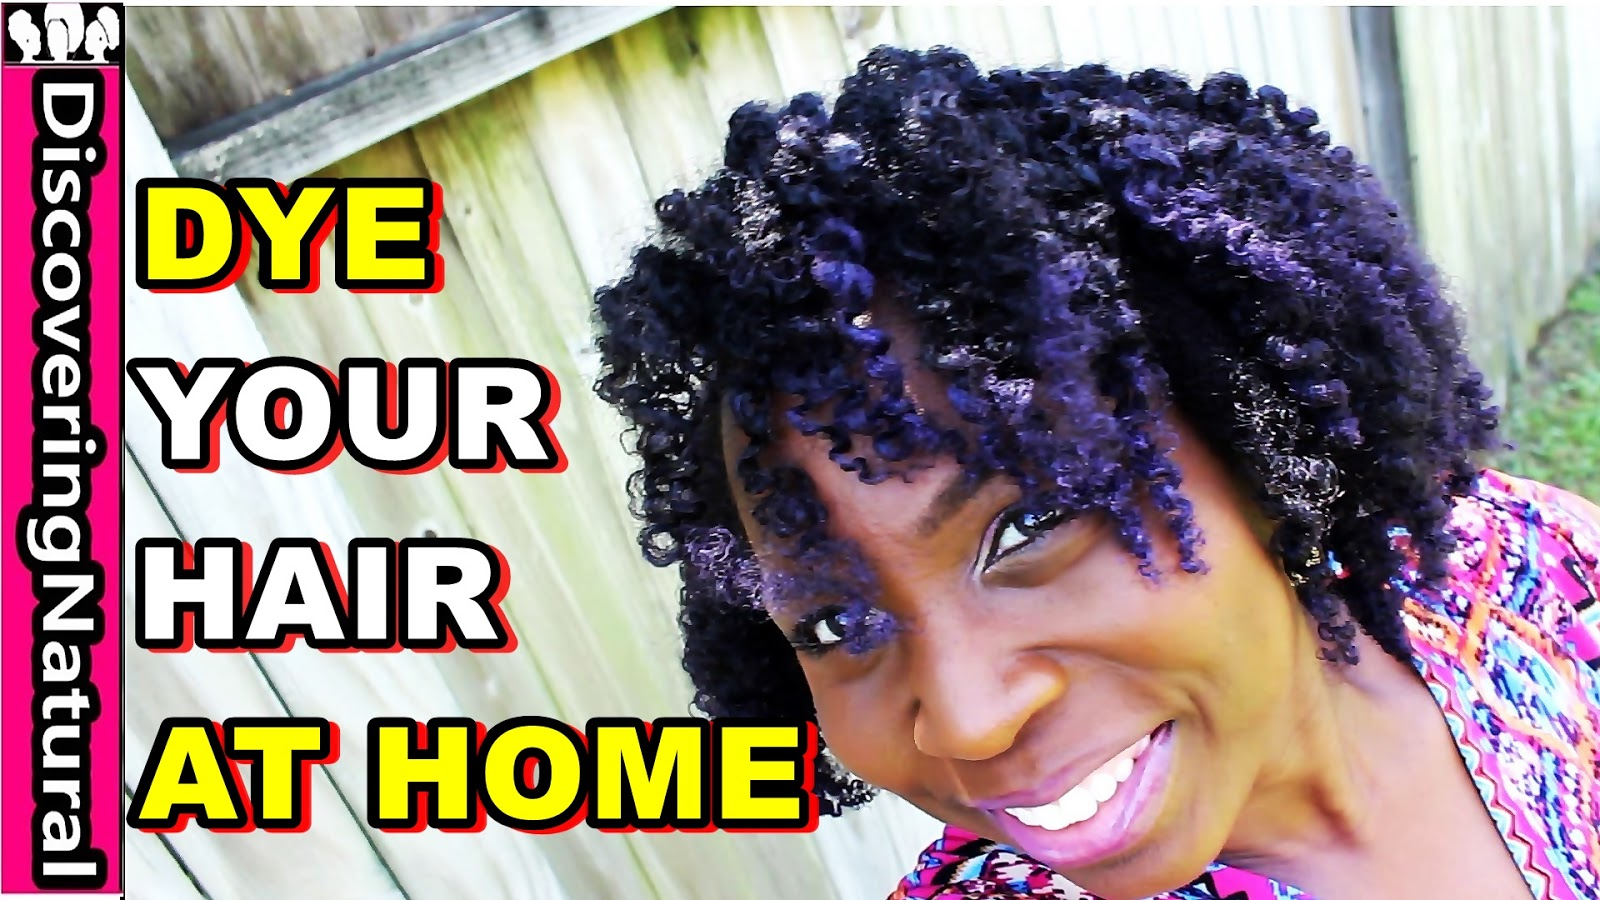 Discoveringnatural How To Dye Hair At Home New Natural Hair Color